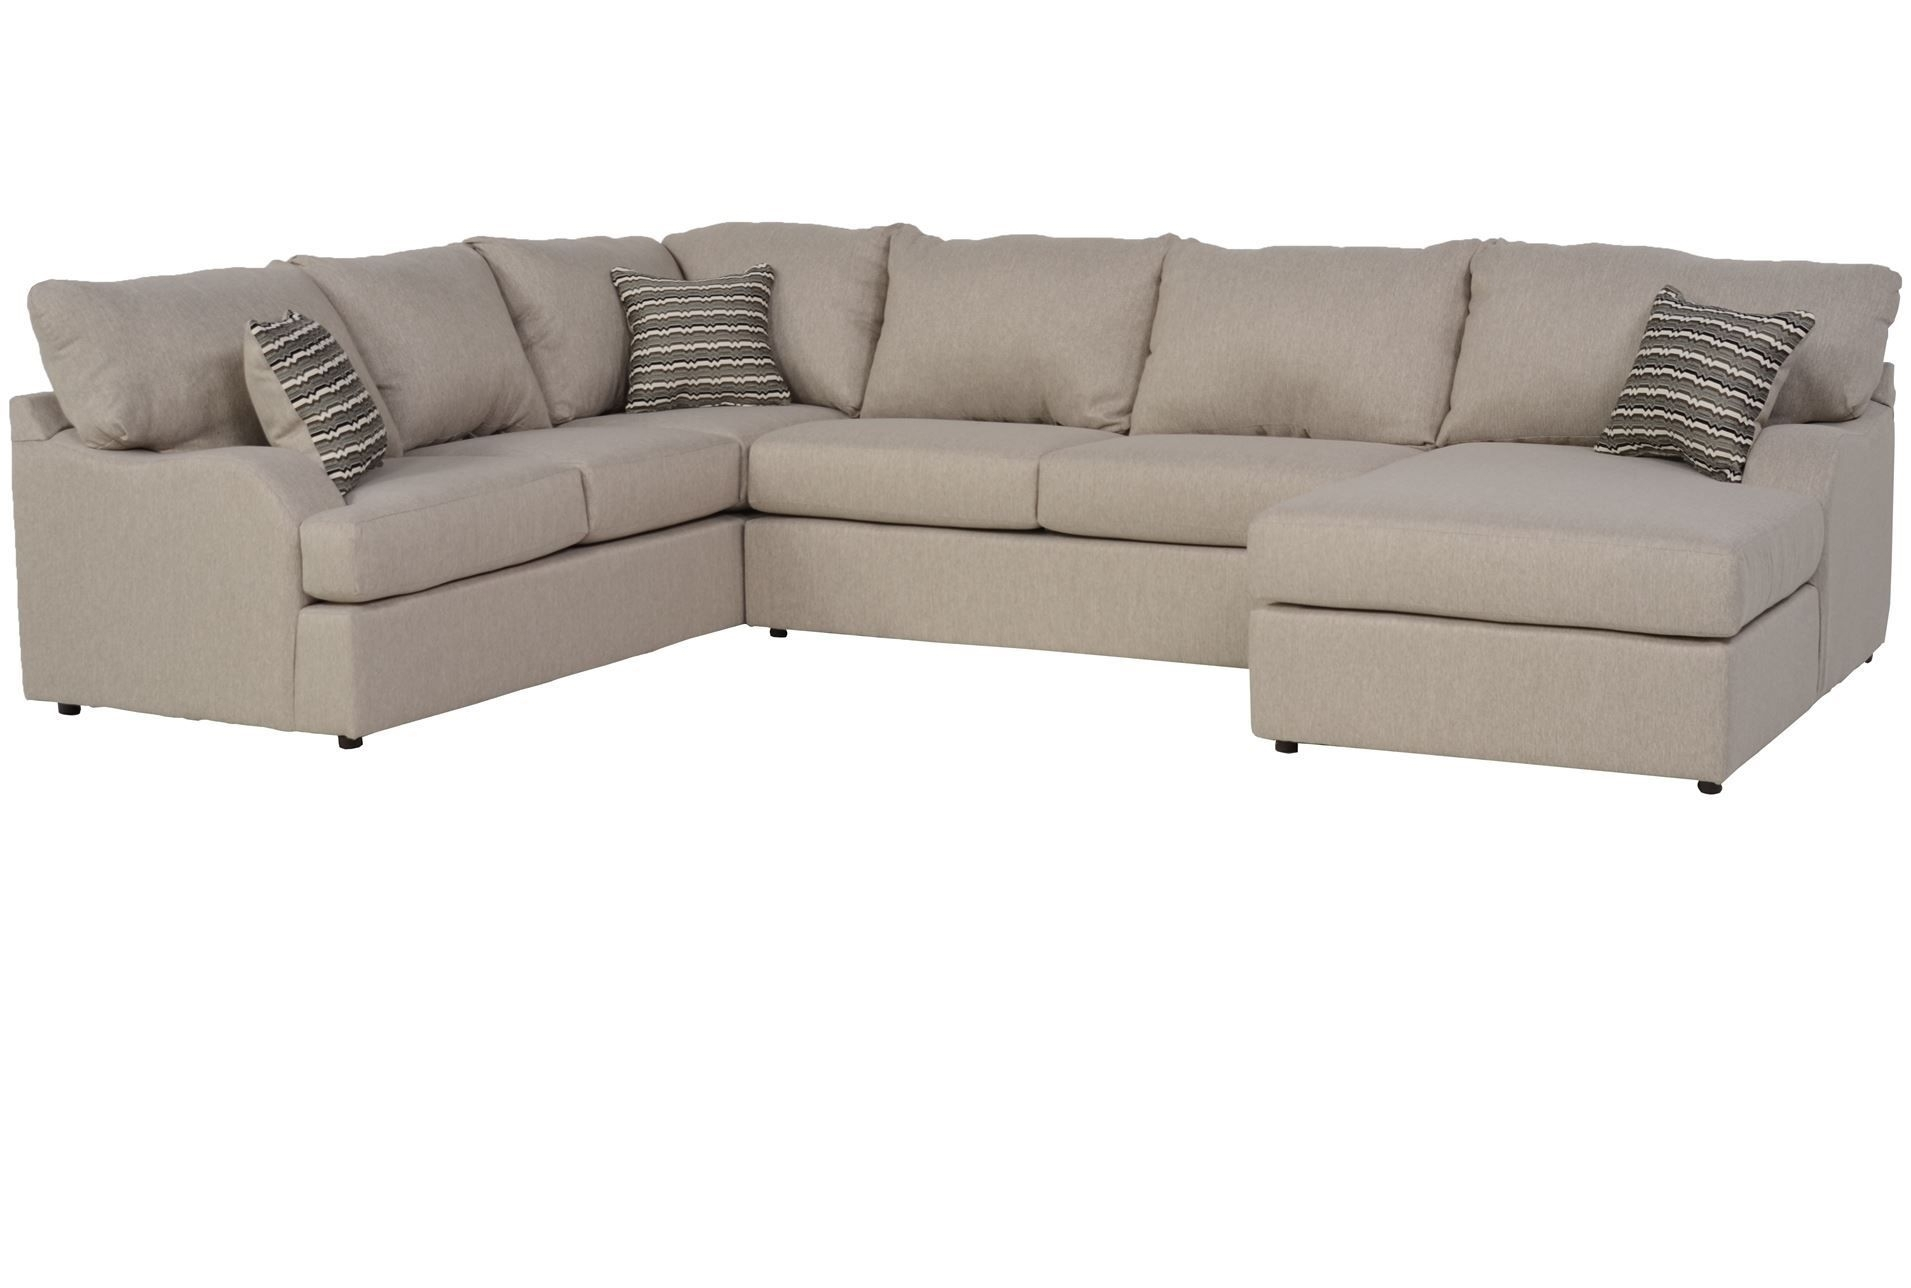 Meyer 3 Piece Sectional W/raf Chaise | Mh | Pinterest | Living Rooms With Regard To Meyer 3 Piece Sectionals With Laf Chaise (Image 18 of 25)